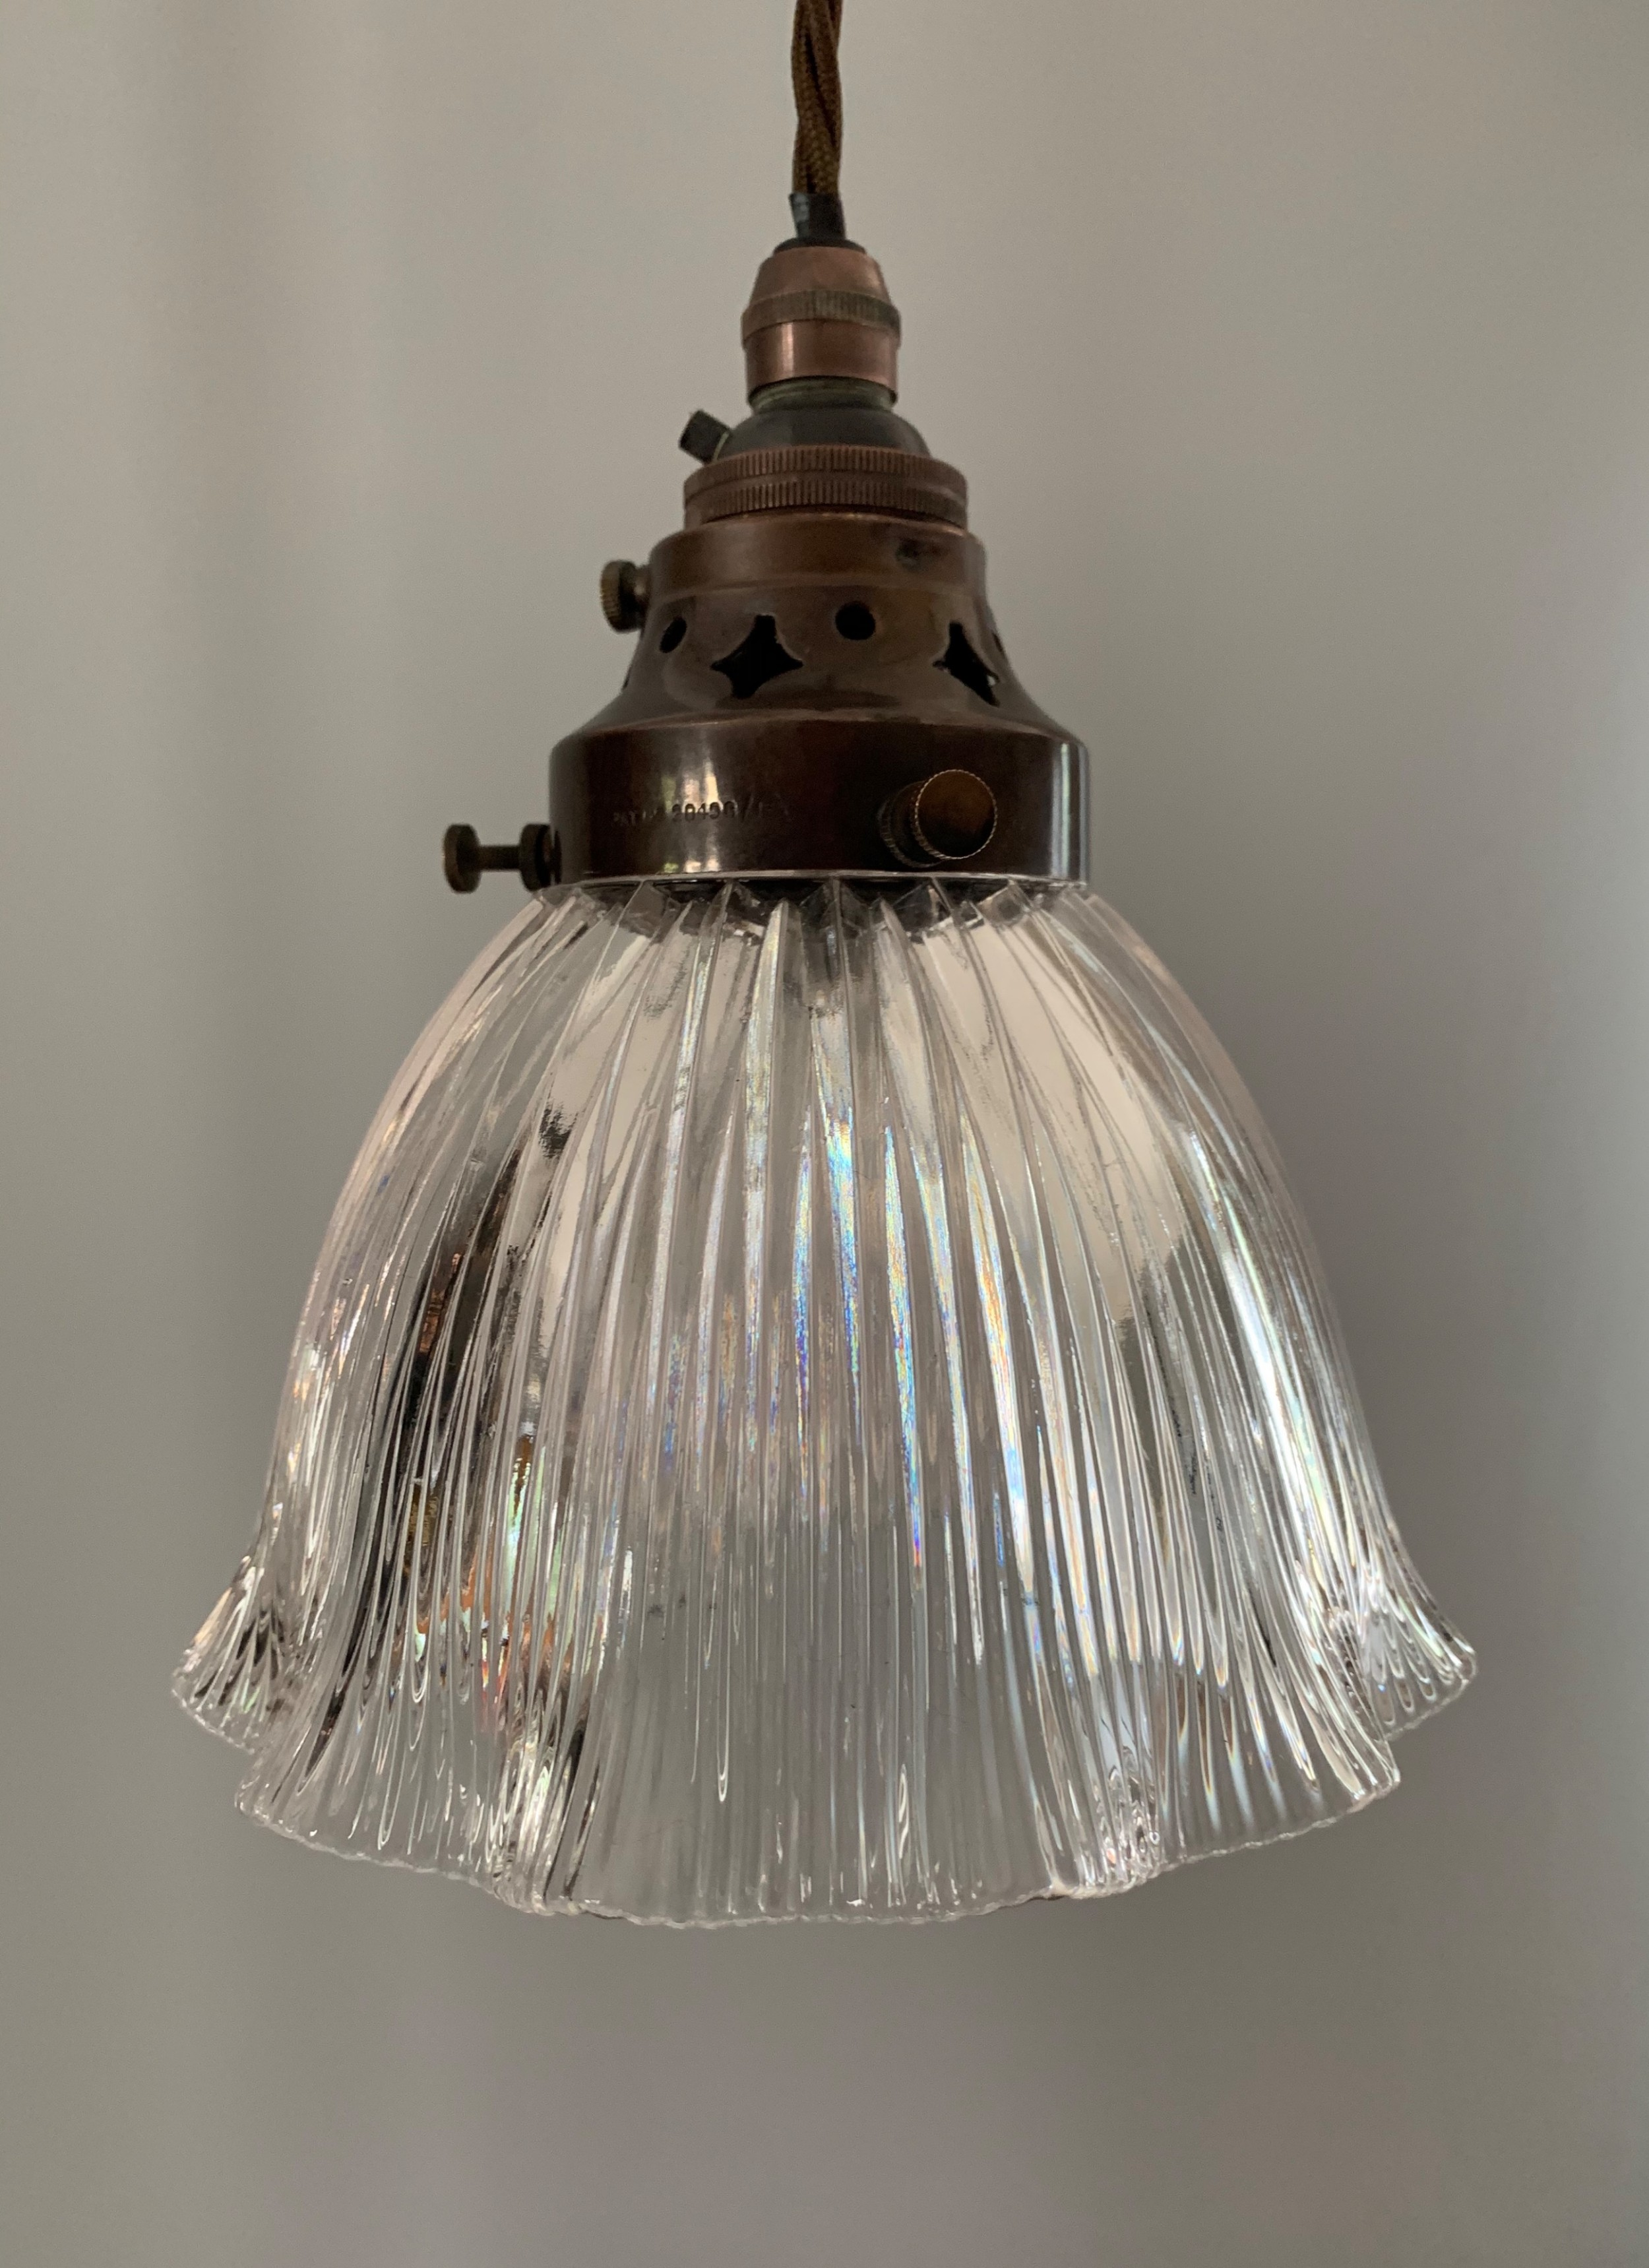 c1910 small holophane ceiling light rewired